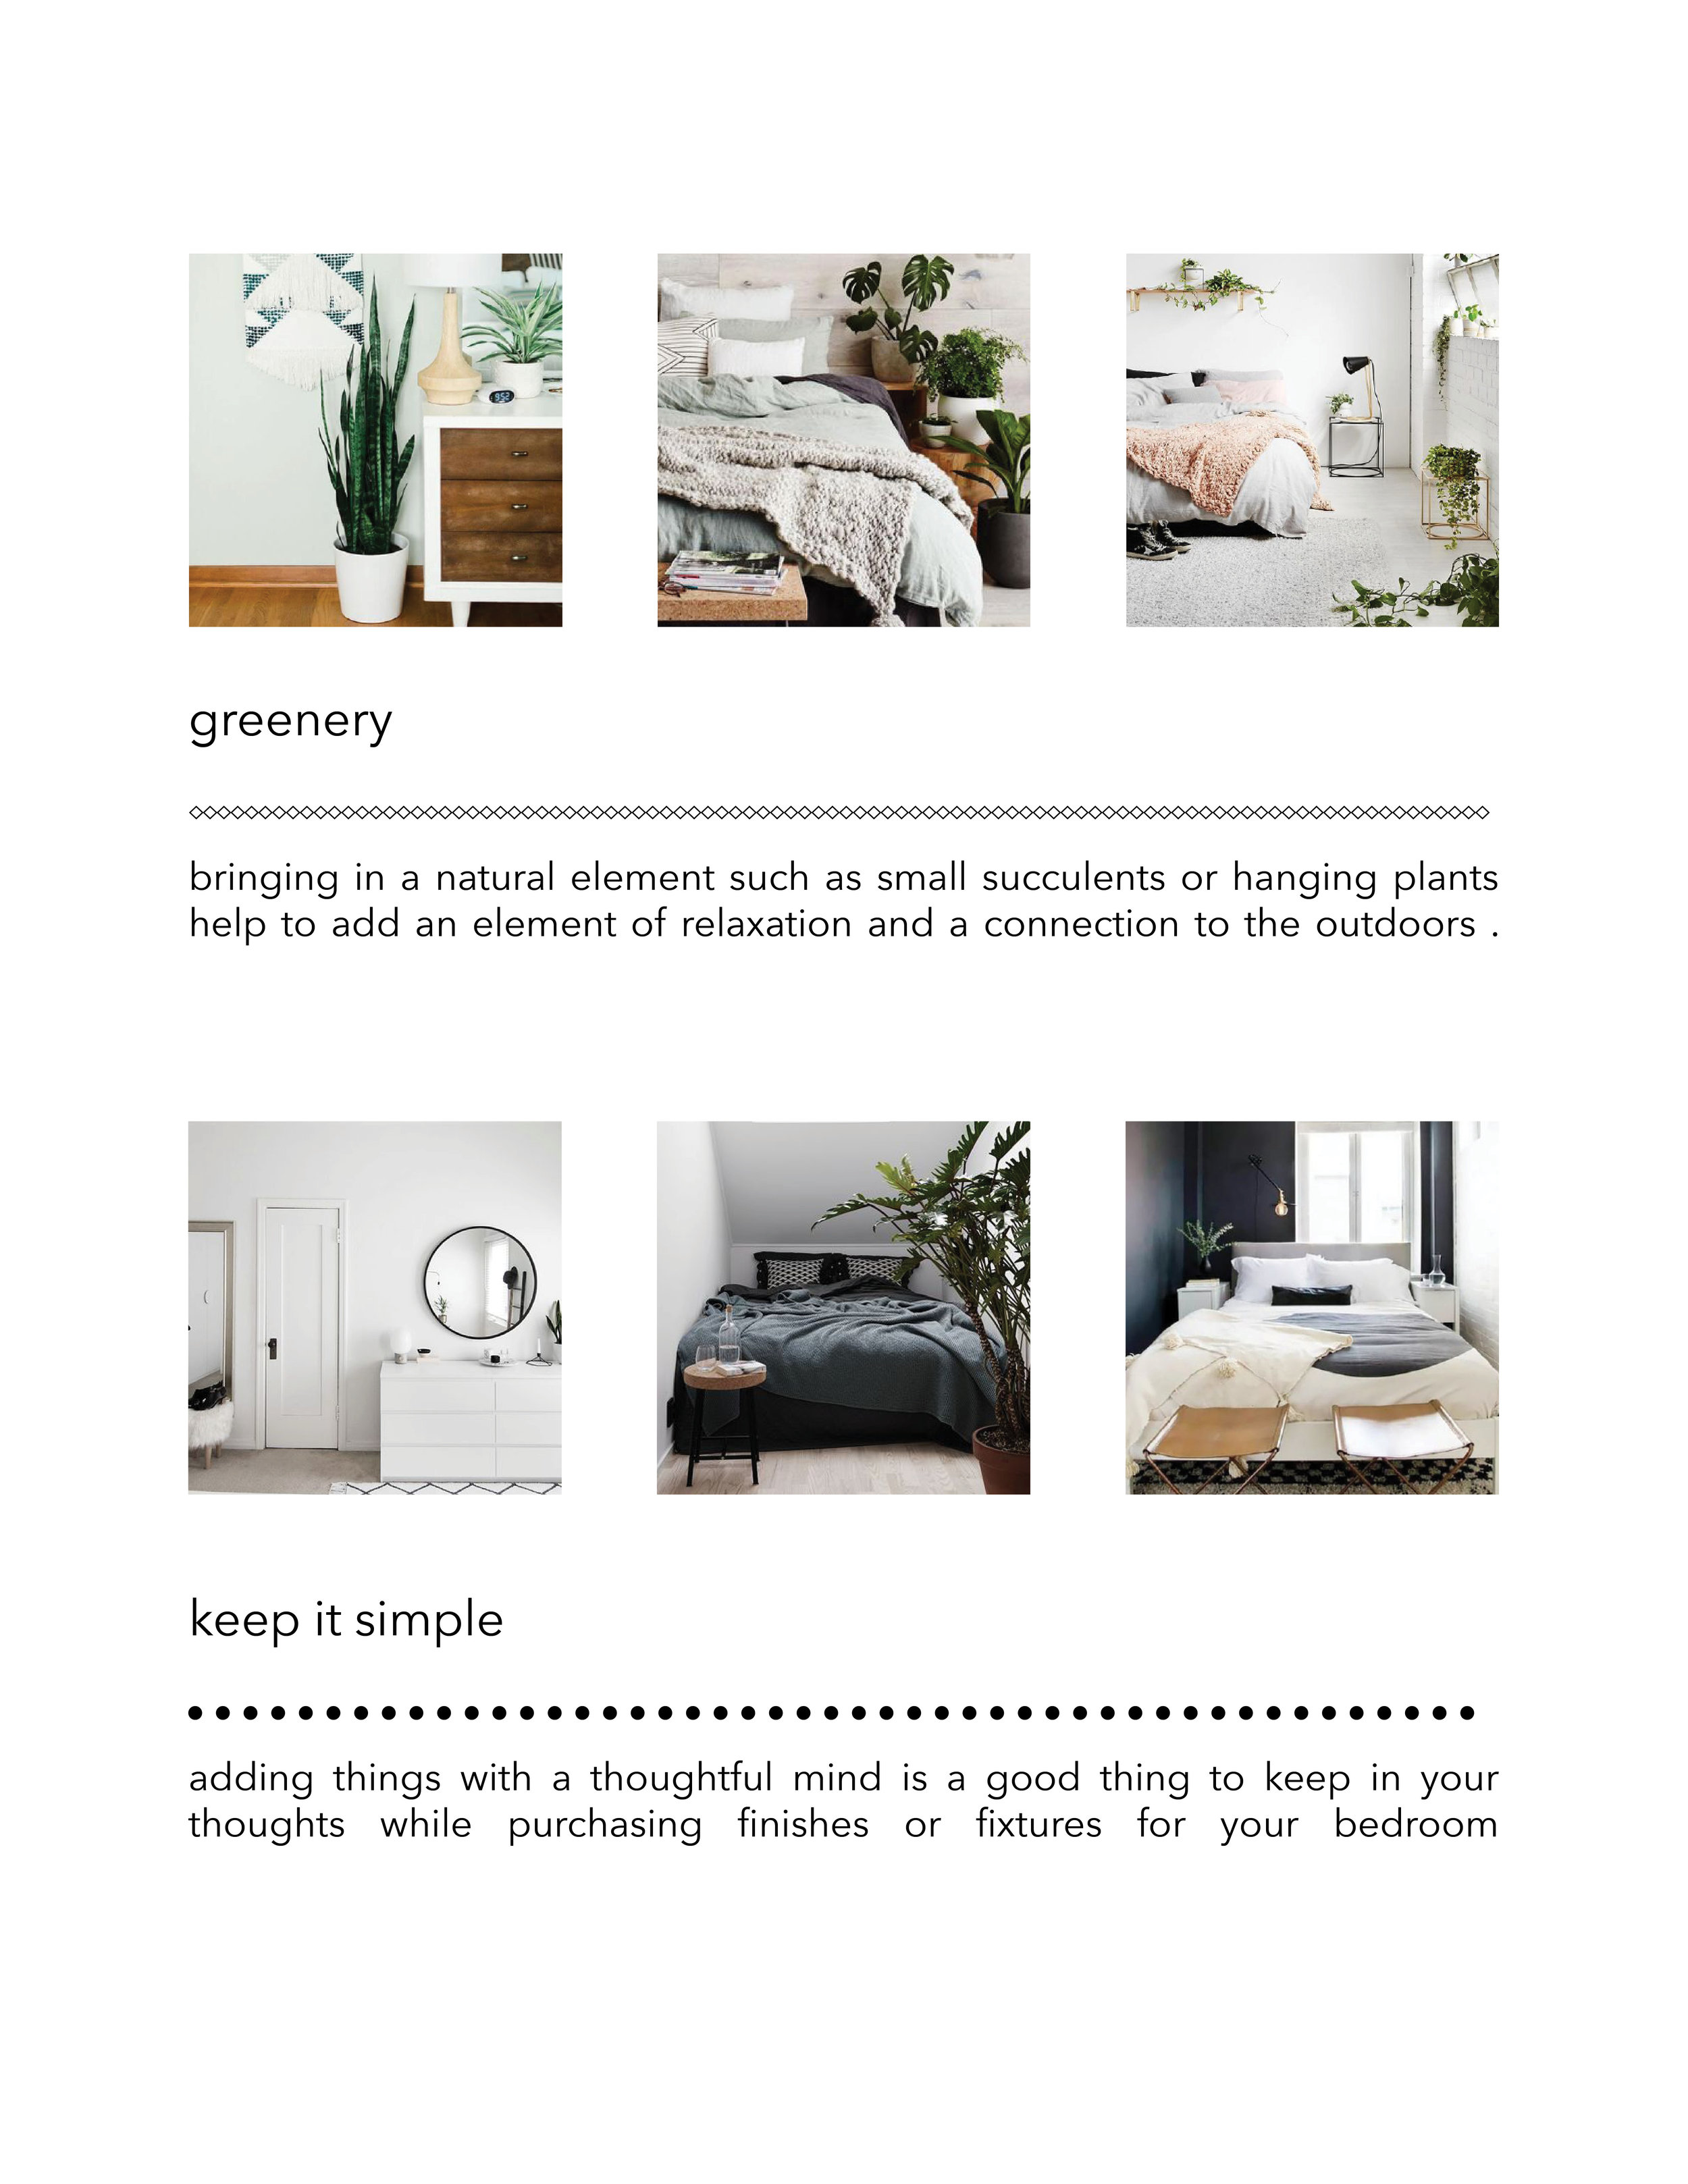 bedroom styling3.jpg